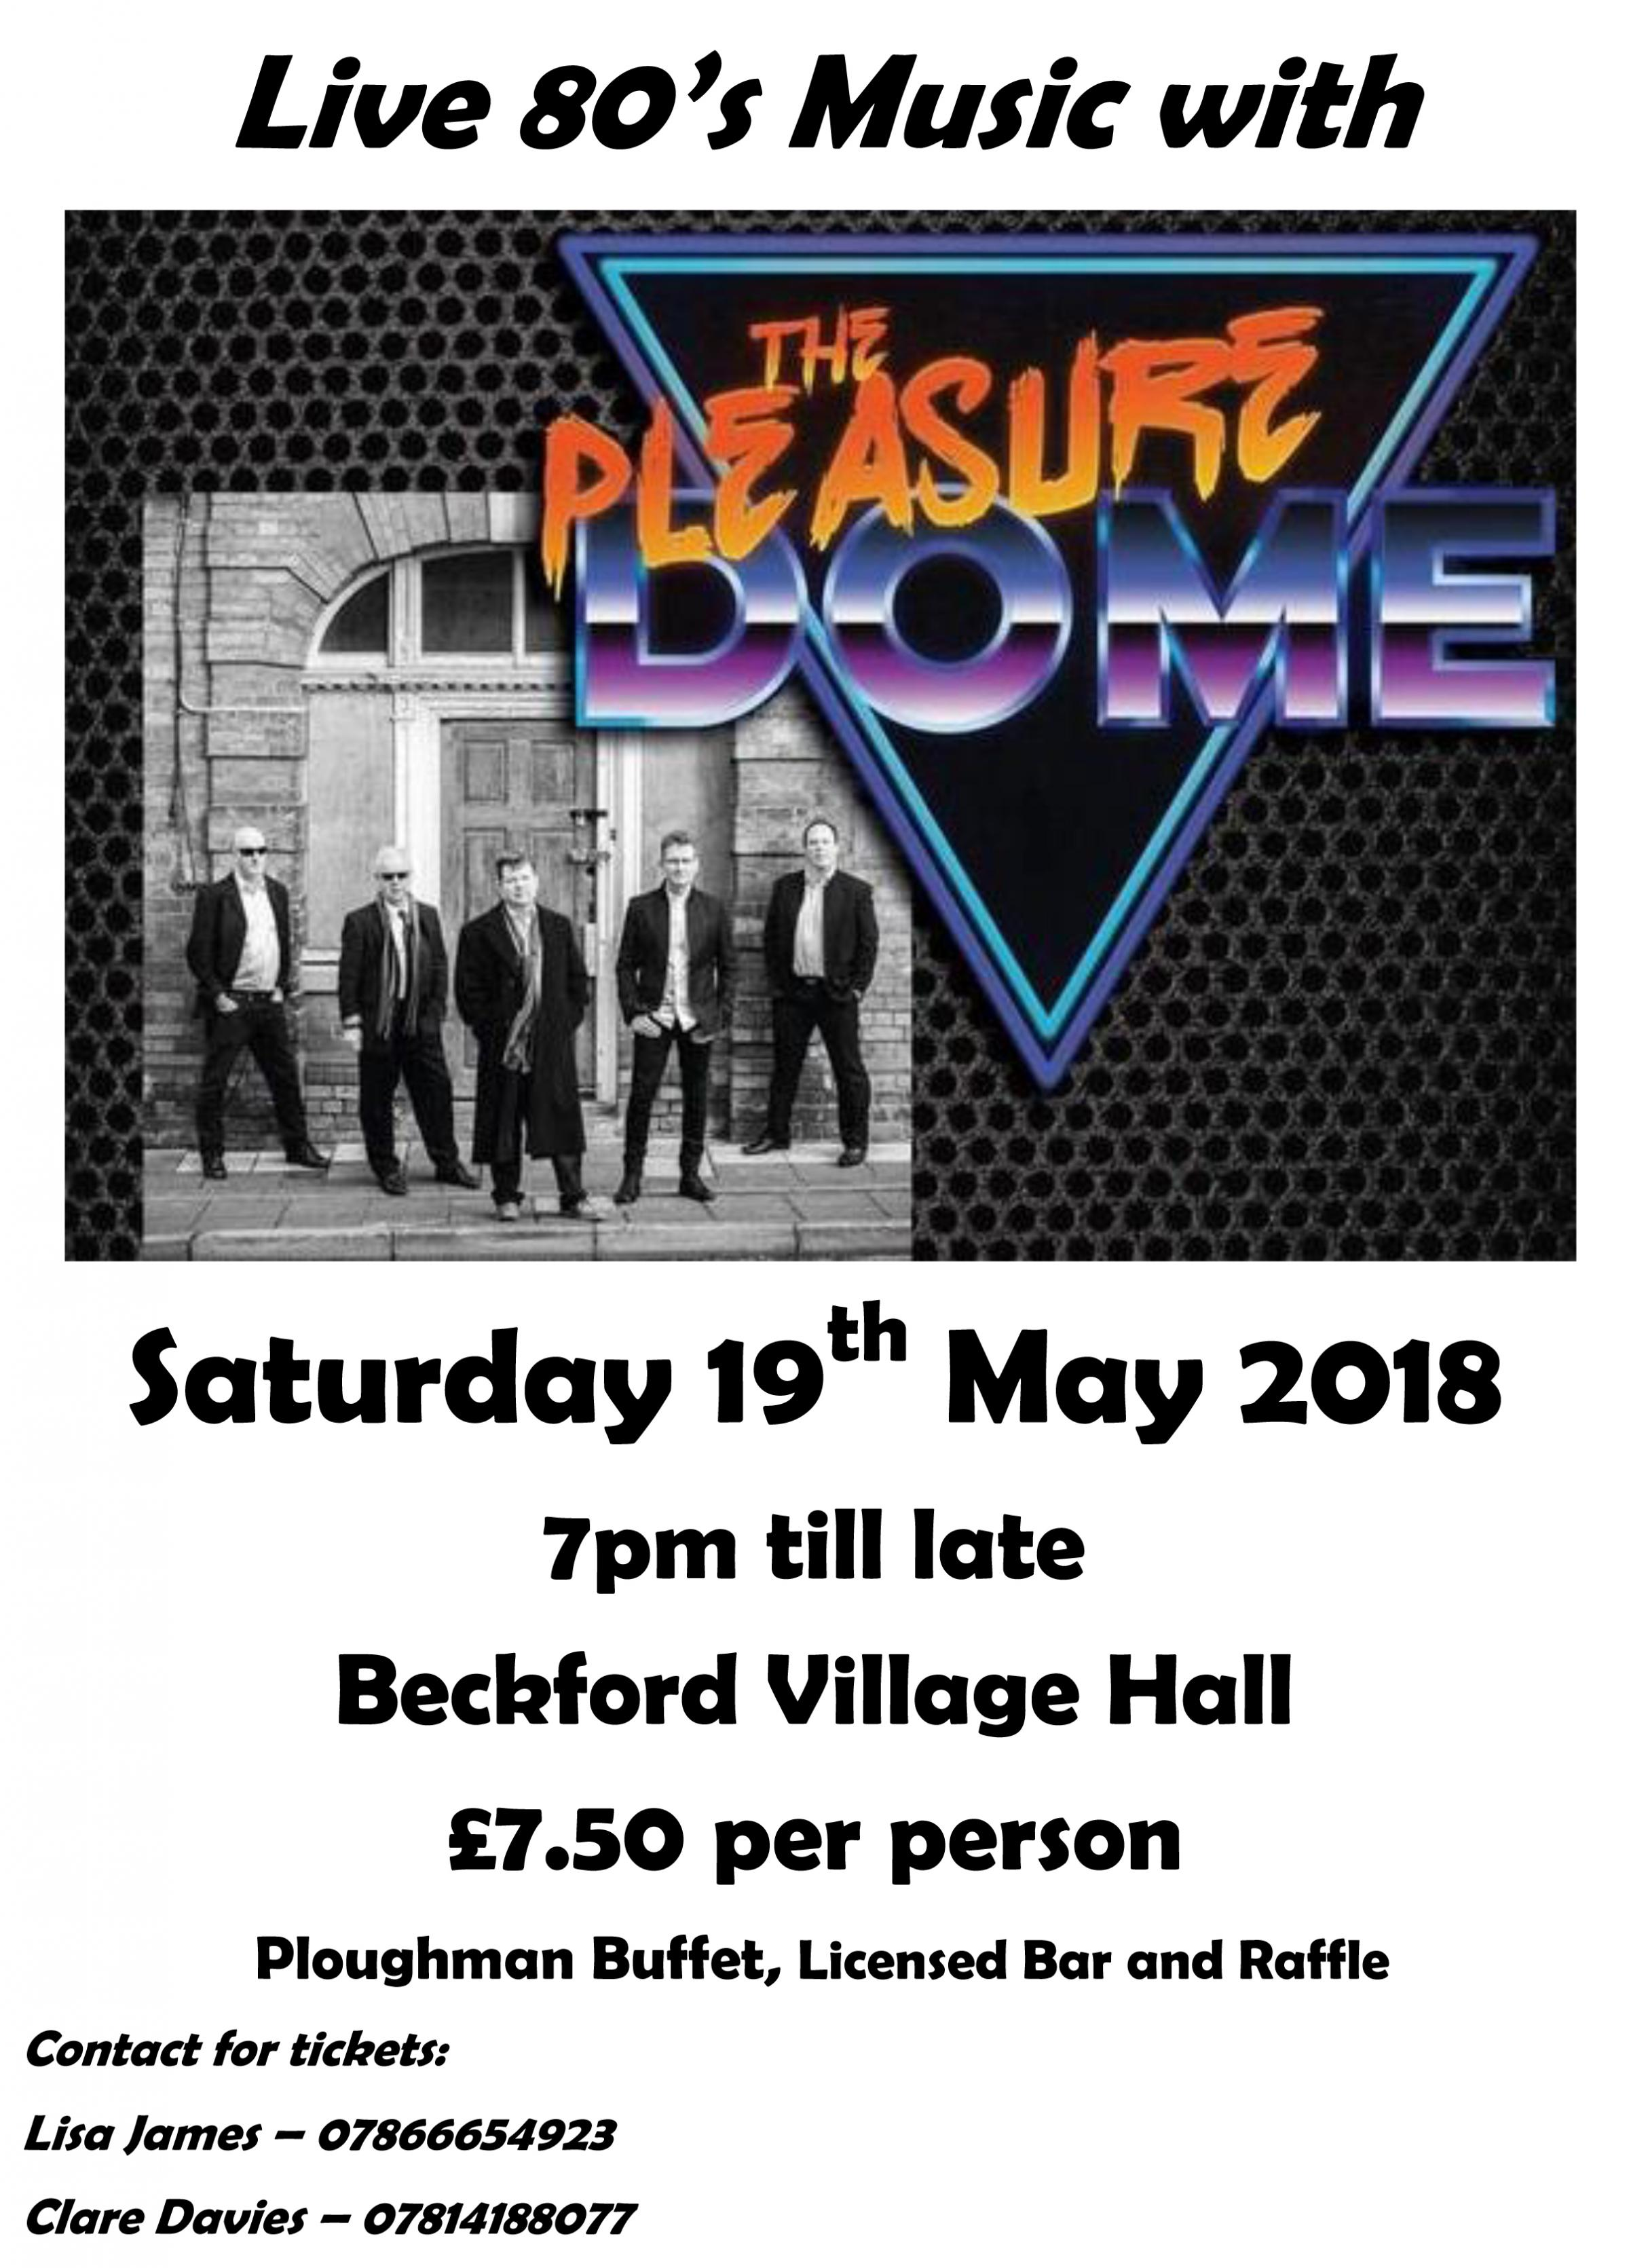 Live 80s Music with the Pleasuredome